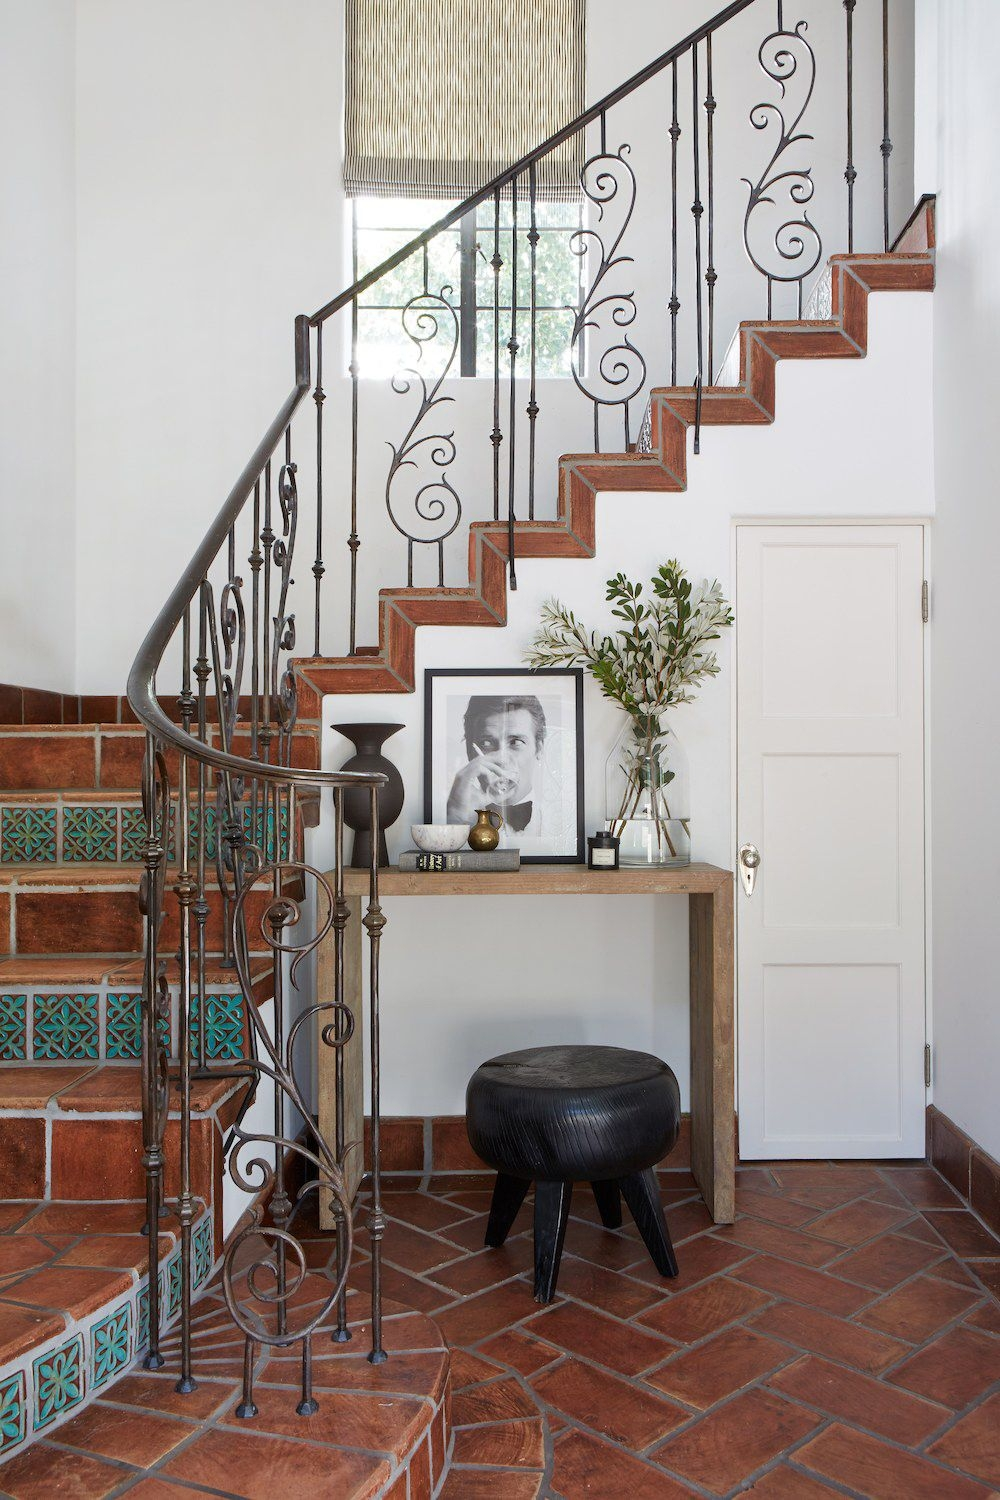 25 Unique Stair Designs Beautiful Stair Ideas For Your House | Duplex Stairs Wall Design | Middle Room Interior Design | Attractive | Staircase Wall Panel | Living Room Layout | Bungalow Duplex Indian